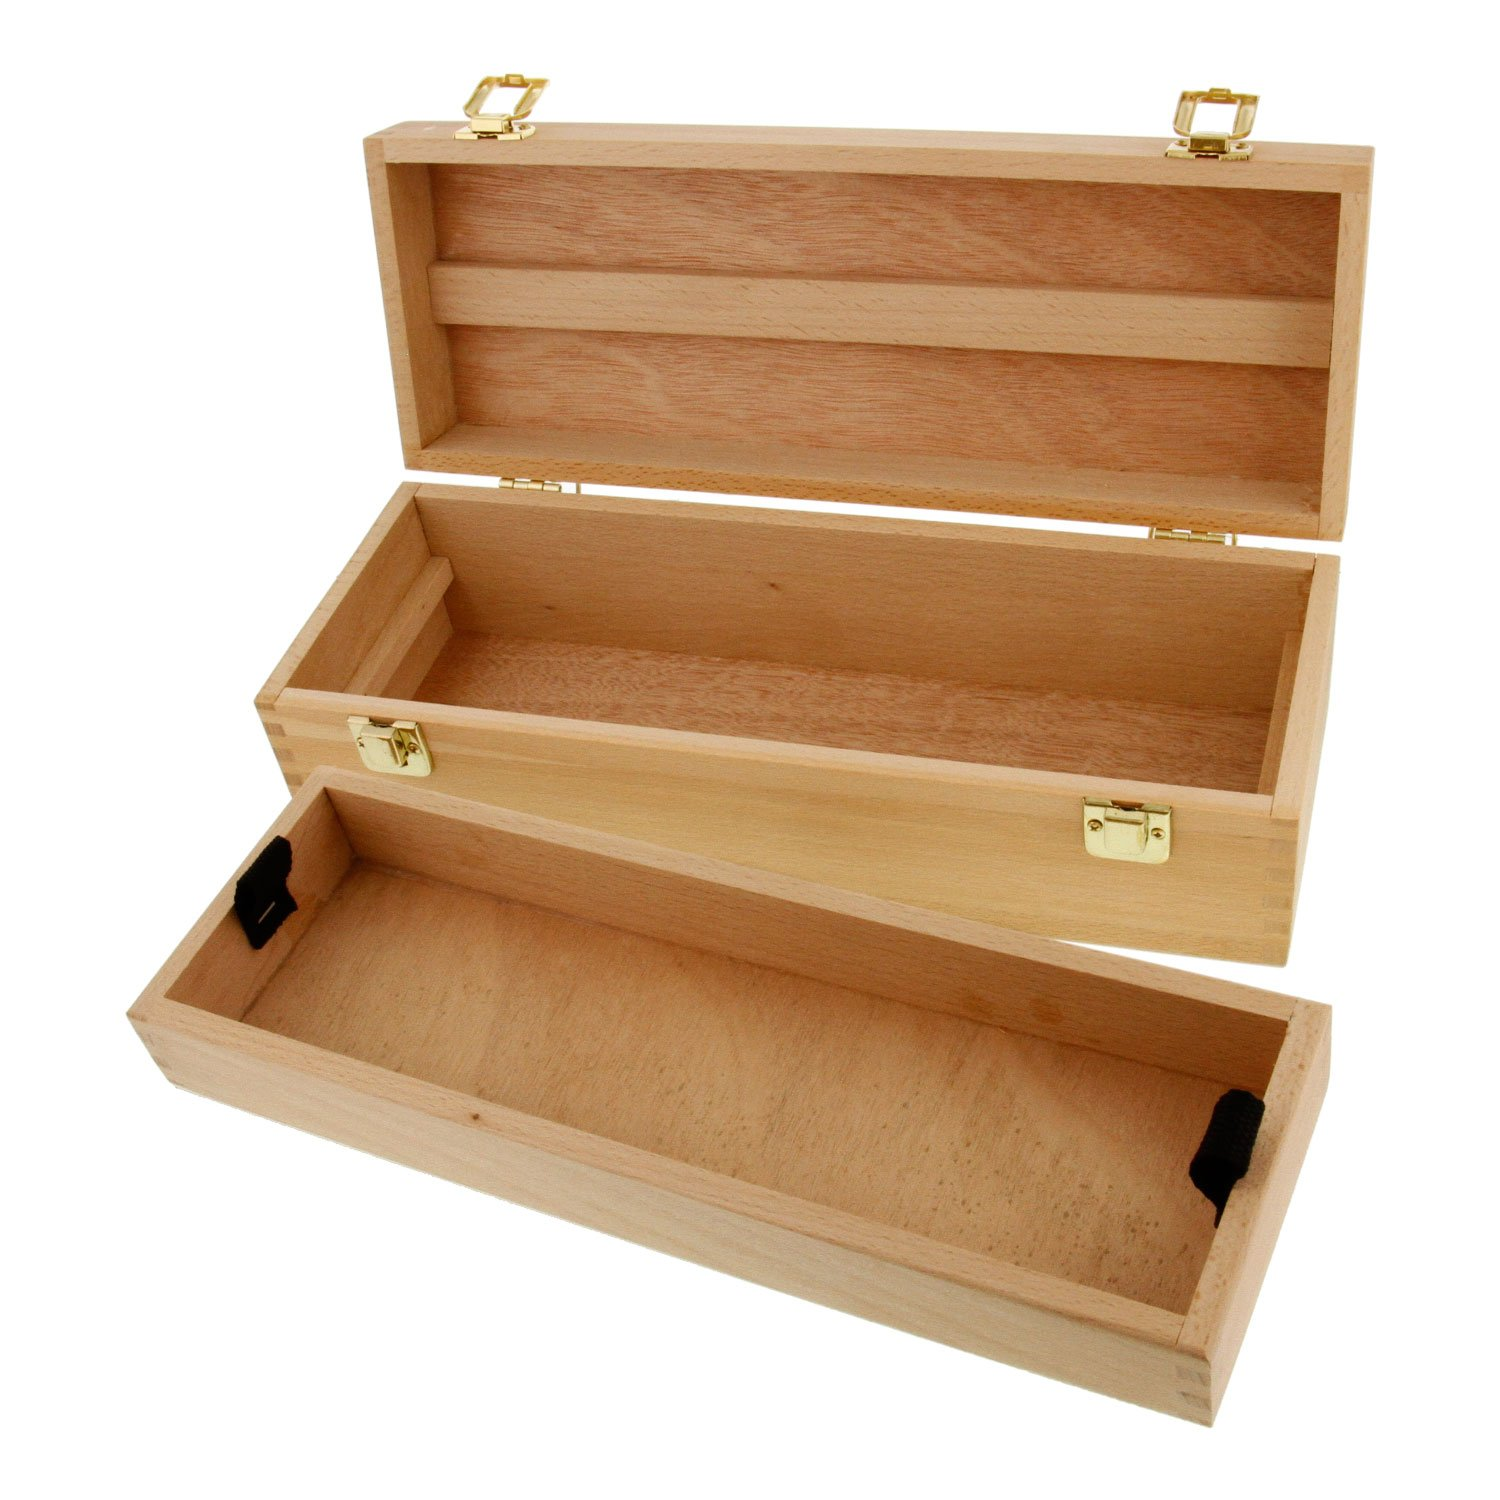 US Art Supply Artist Wood Pastel, Pen, Marker Storage Box with Drawer(s) (Medium Tool Box) 4336937505